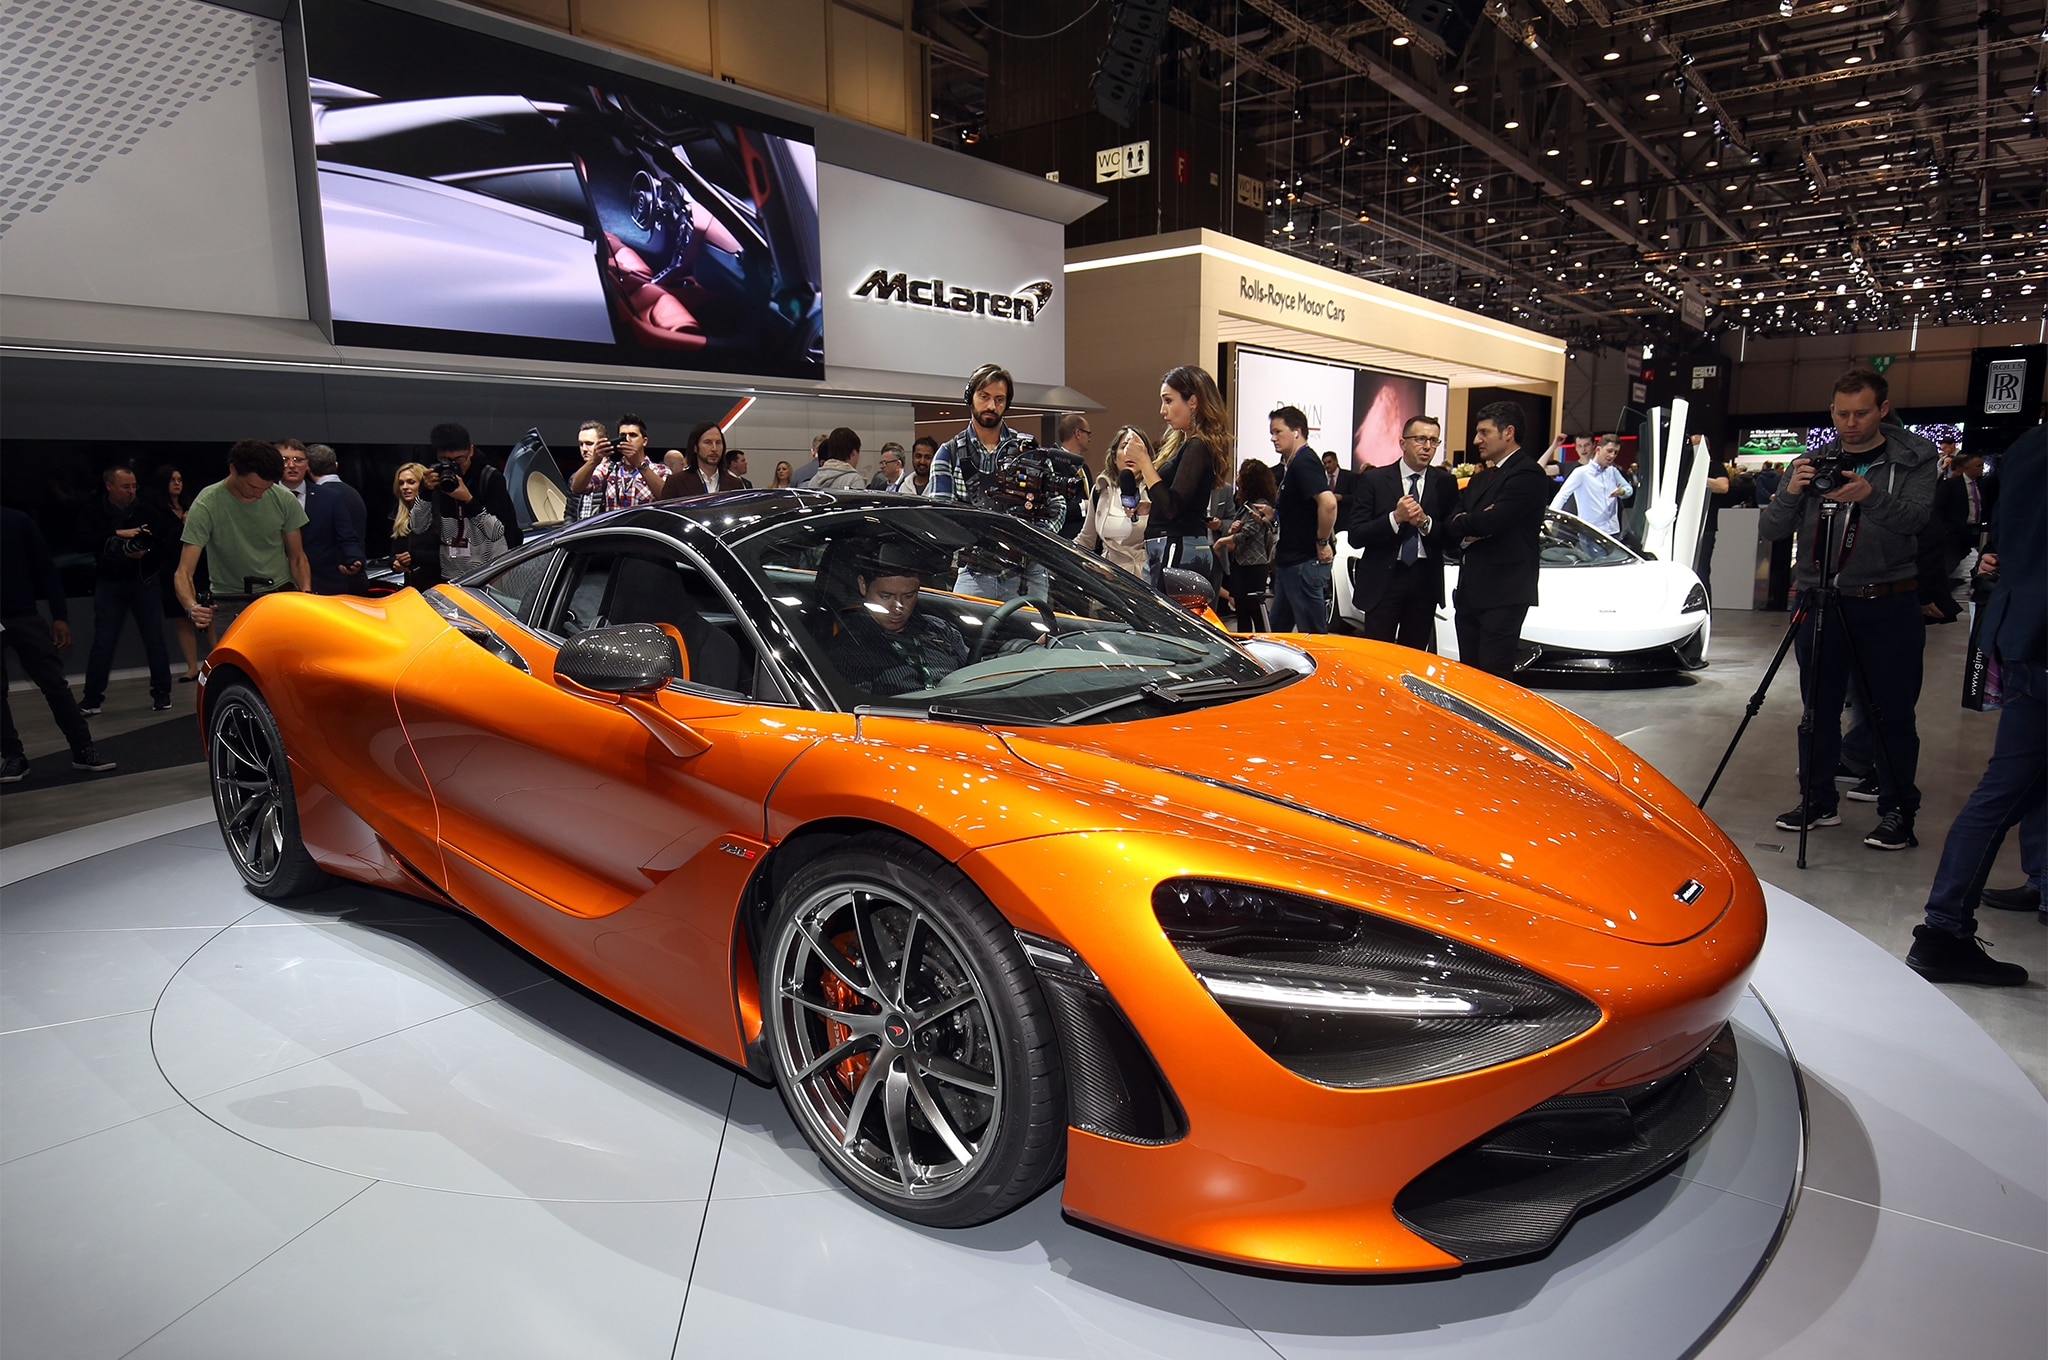 2018 mclaren gt. Wonderful Mclaren Show More On 2018 Mclaren Gt